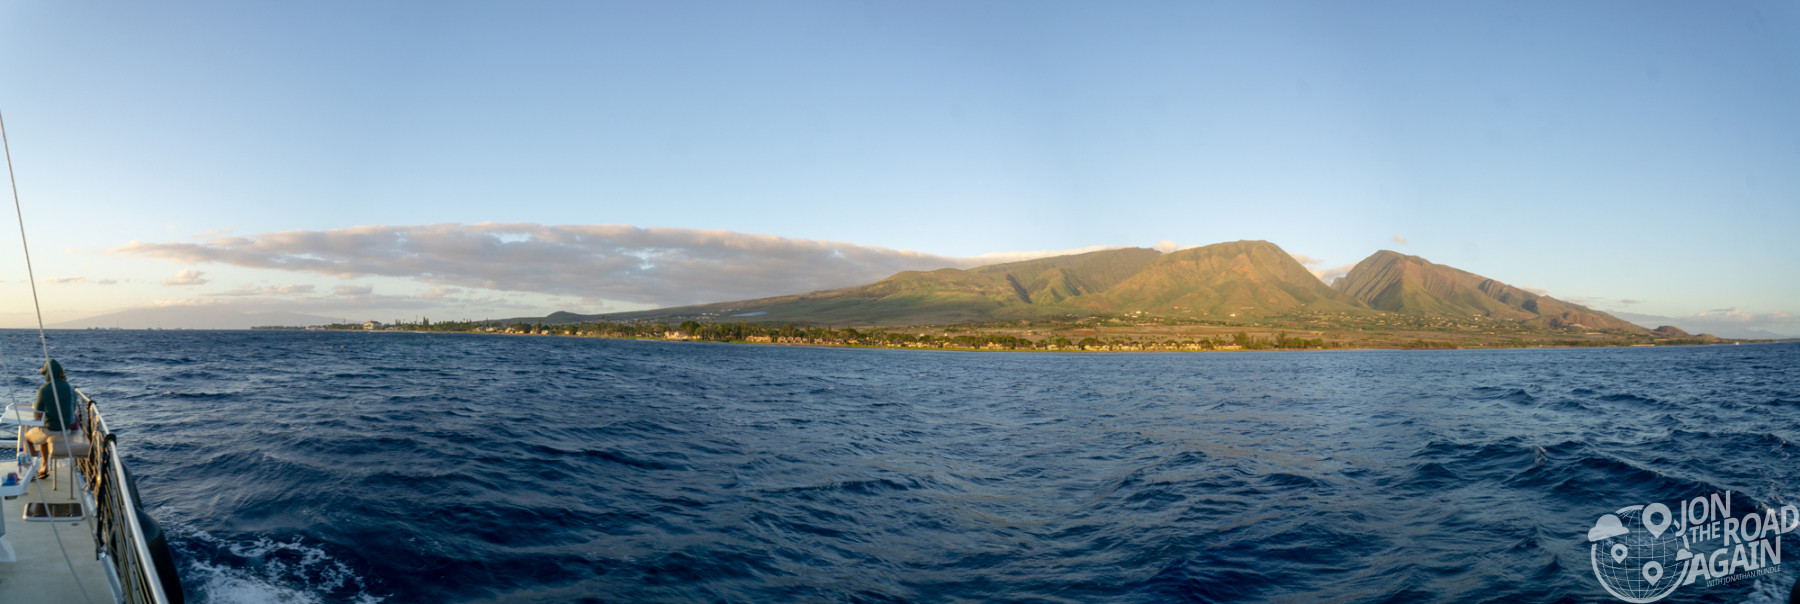 Maui sunset cruise panorama